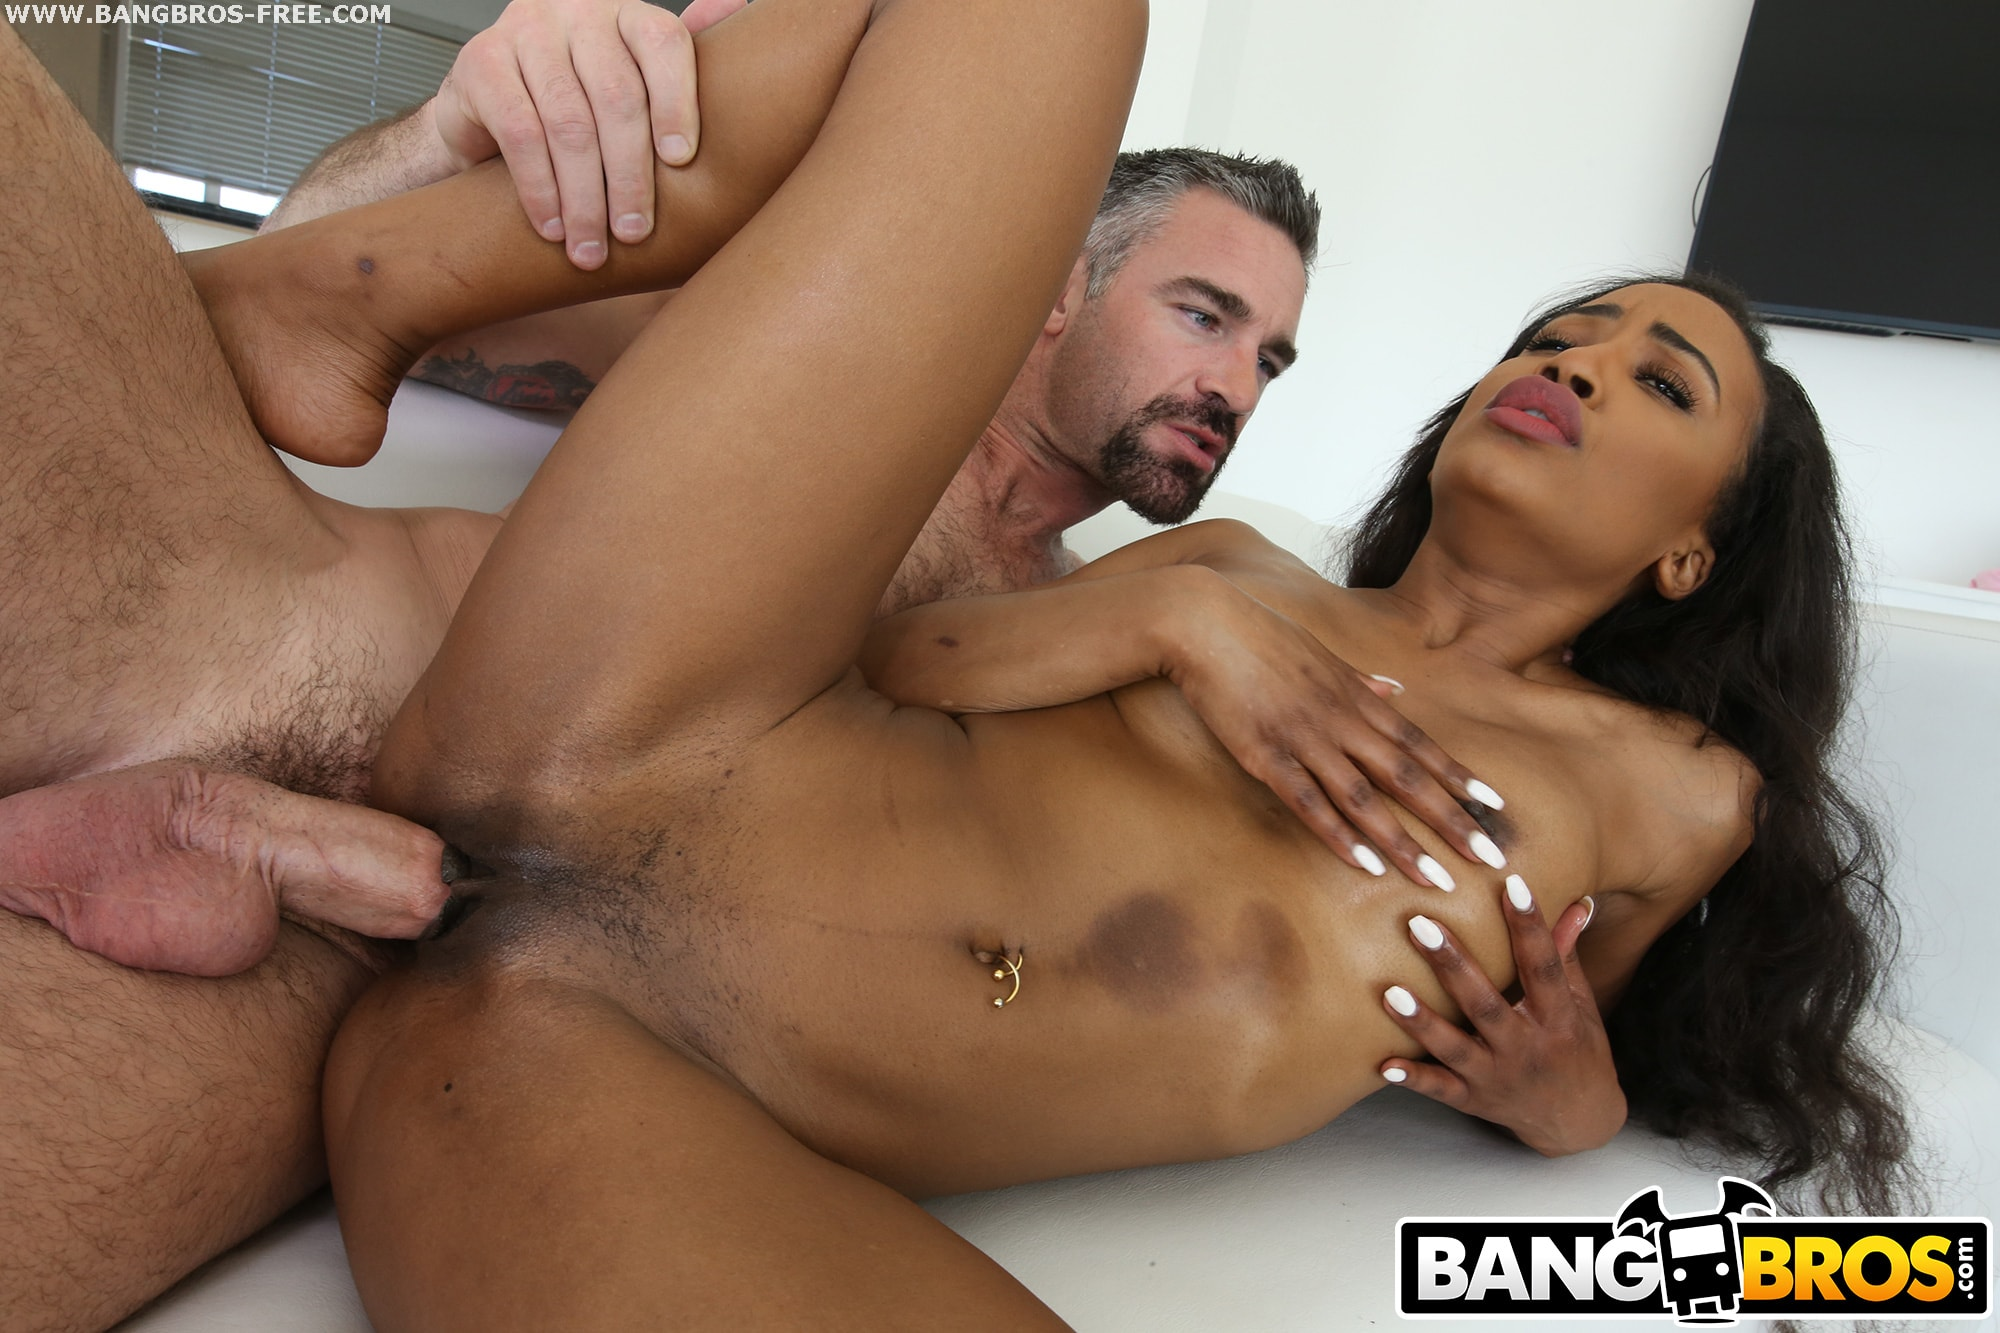 Bangbros 'Demi's Big Dick Crush Comes True' starring Demi Sutra (Photo 308)